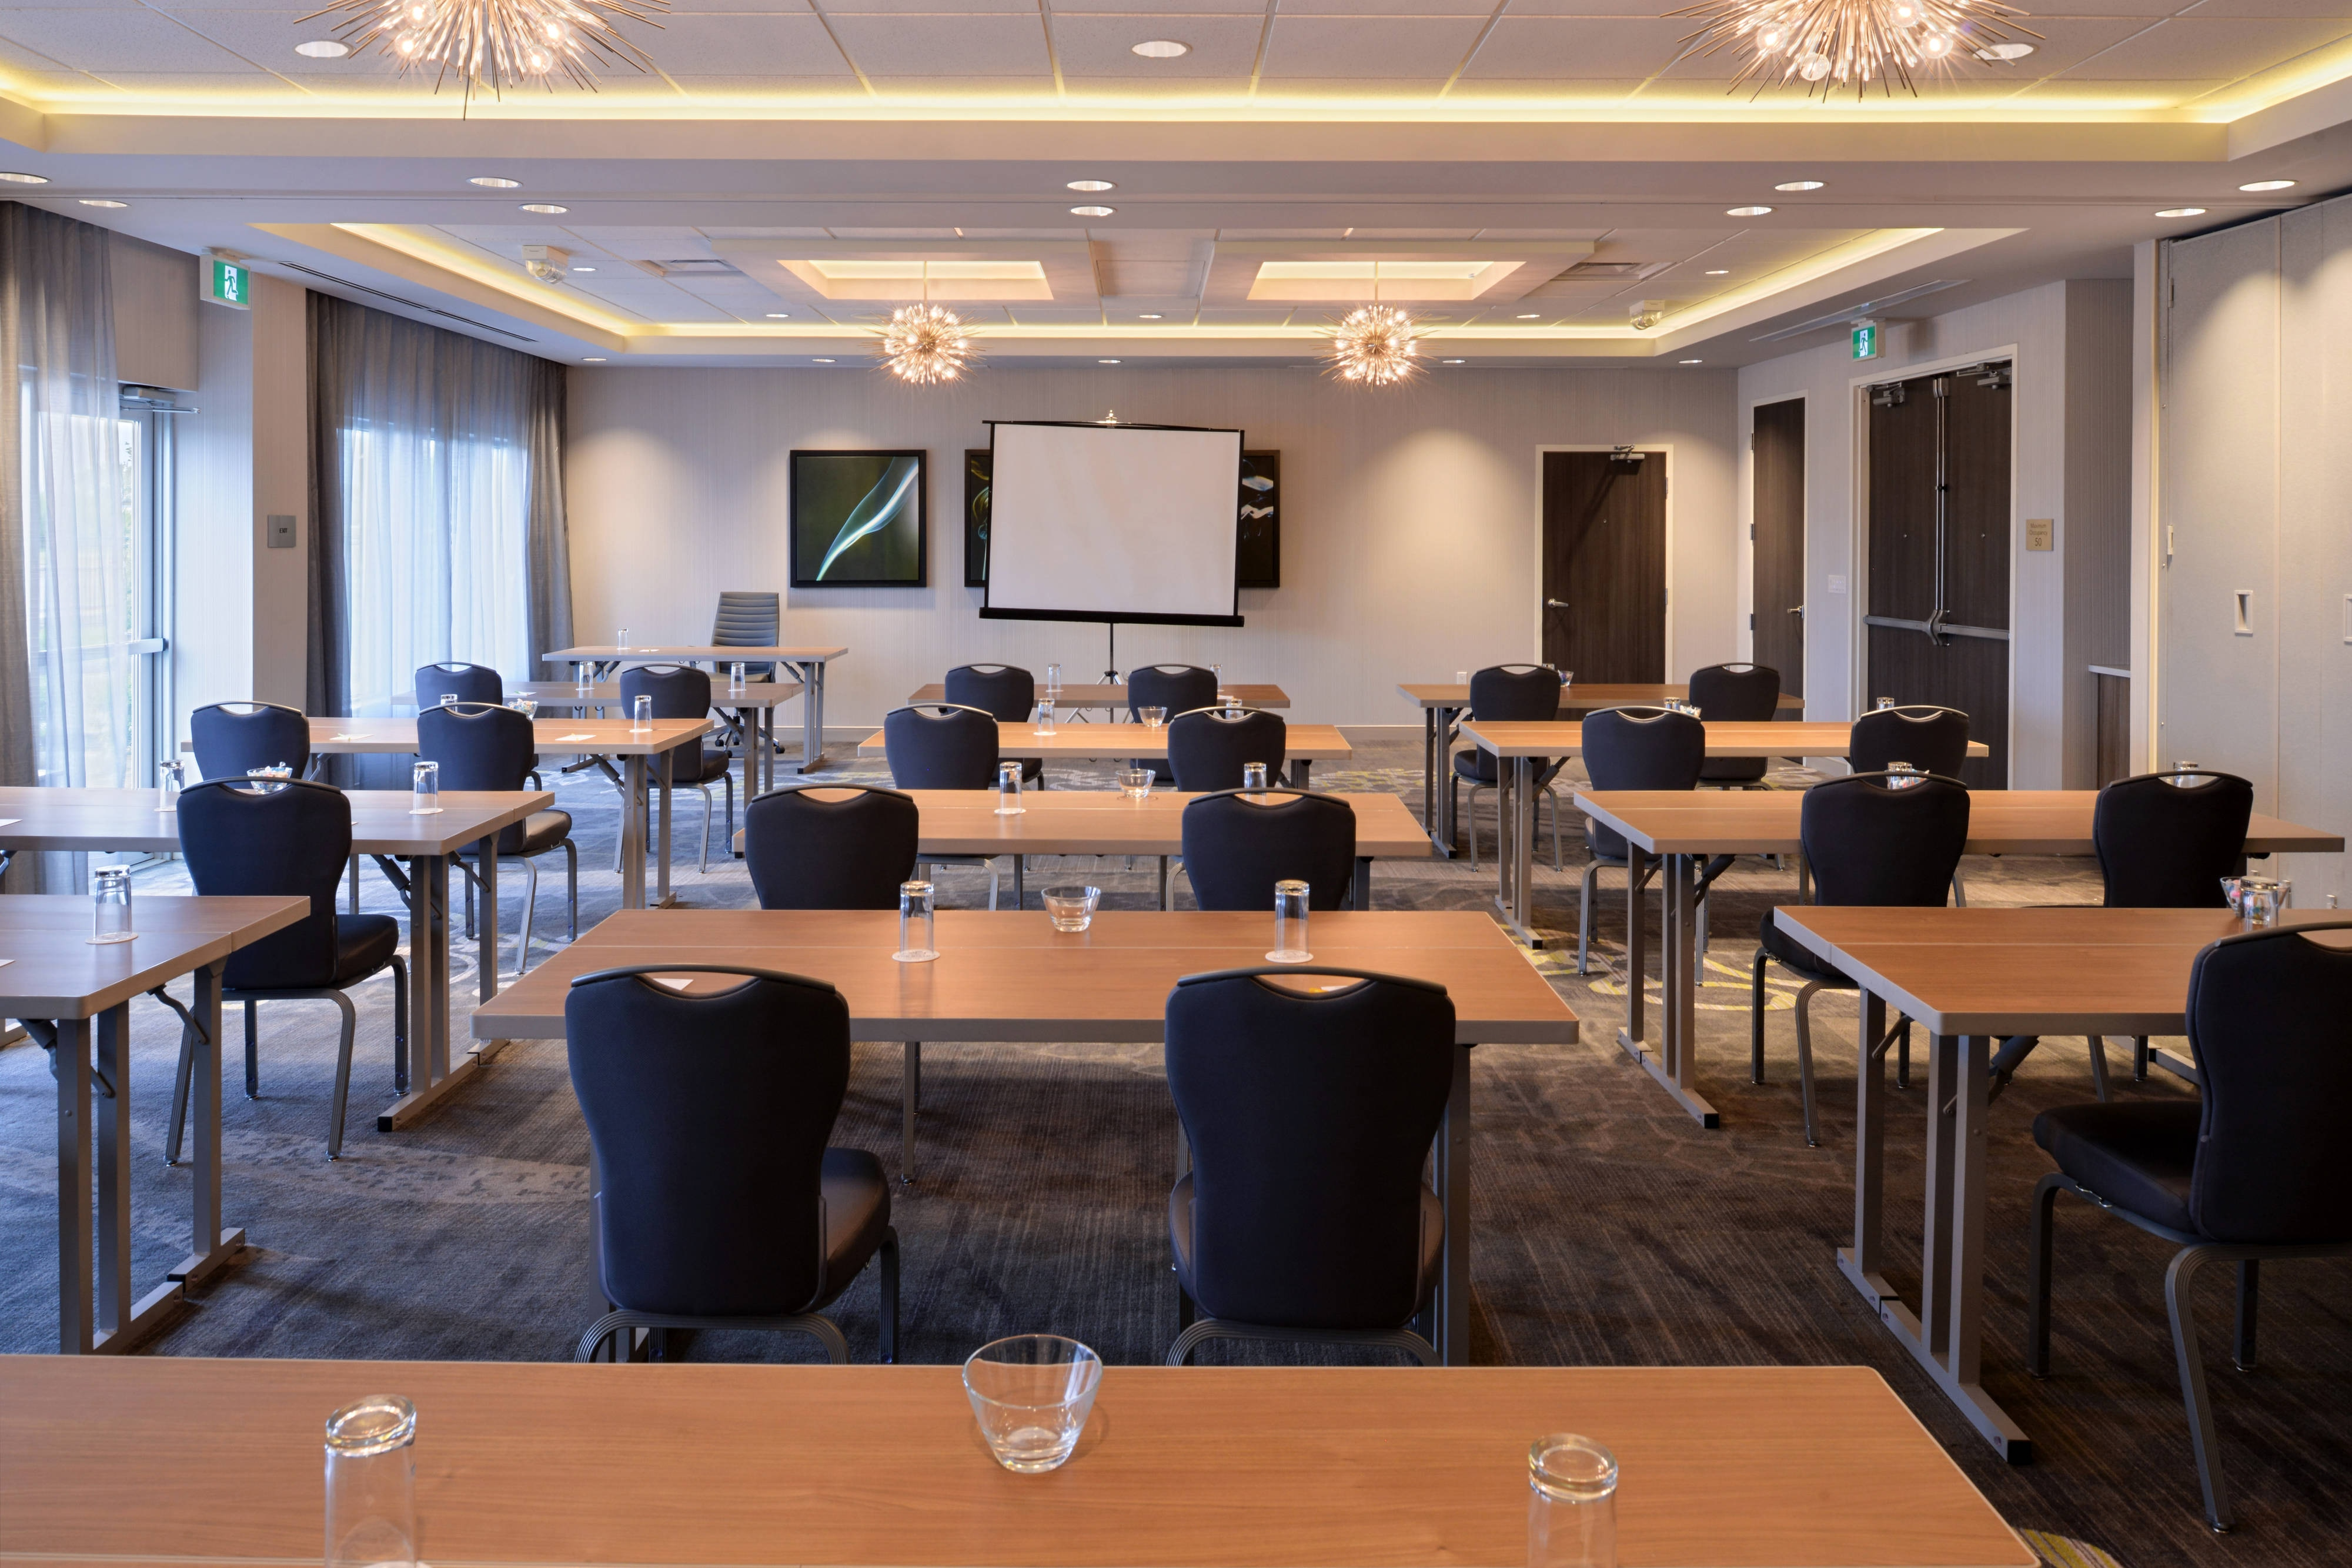 Meeting Room - Classroom-Style Seating